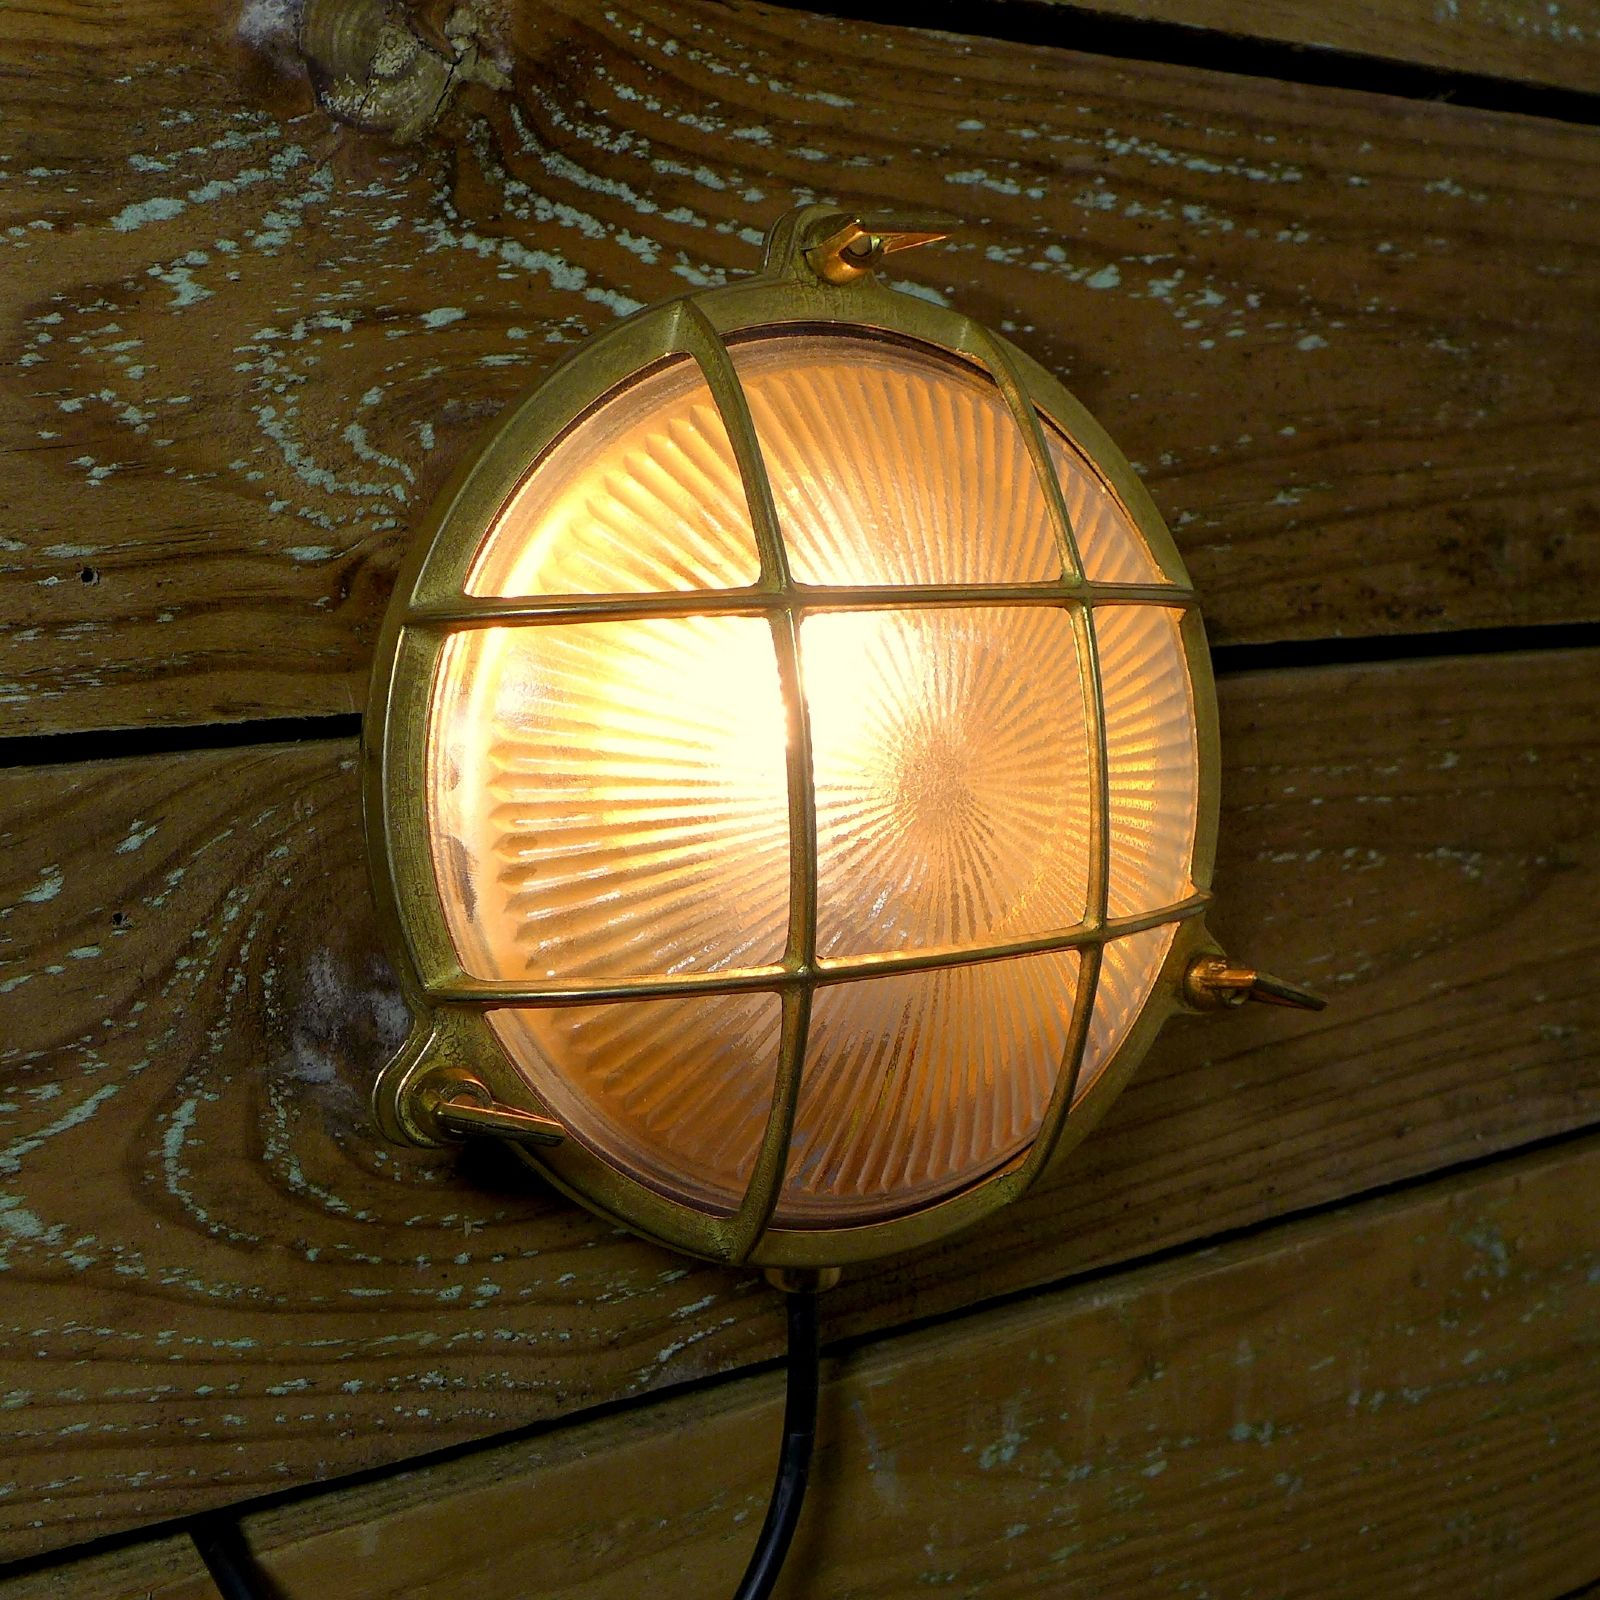 Marine brass caged wall light love this rustic style nautical marine brass caged wall light love this rustic style mozeypictures Choice Image